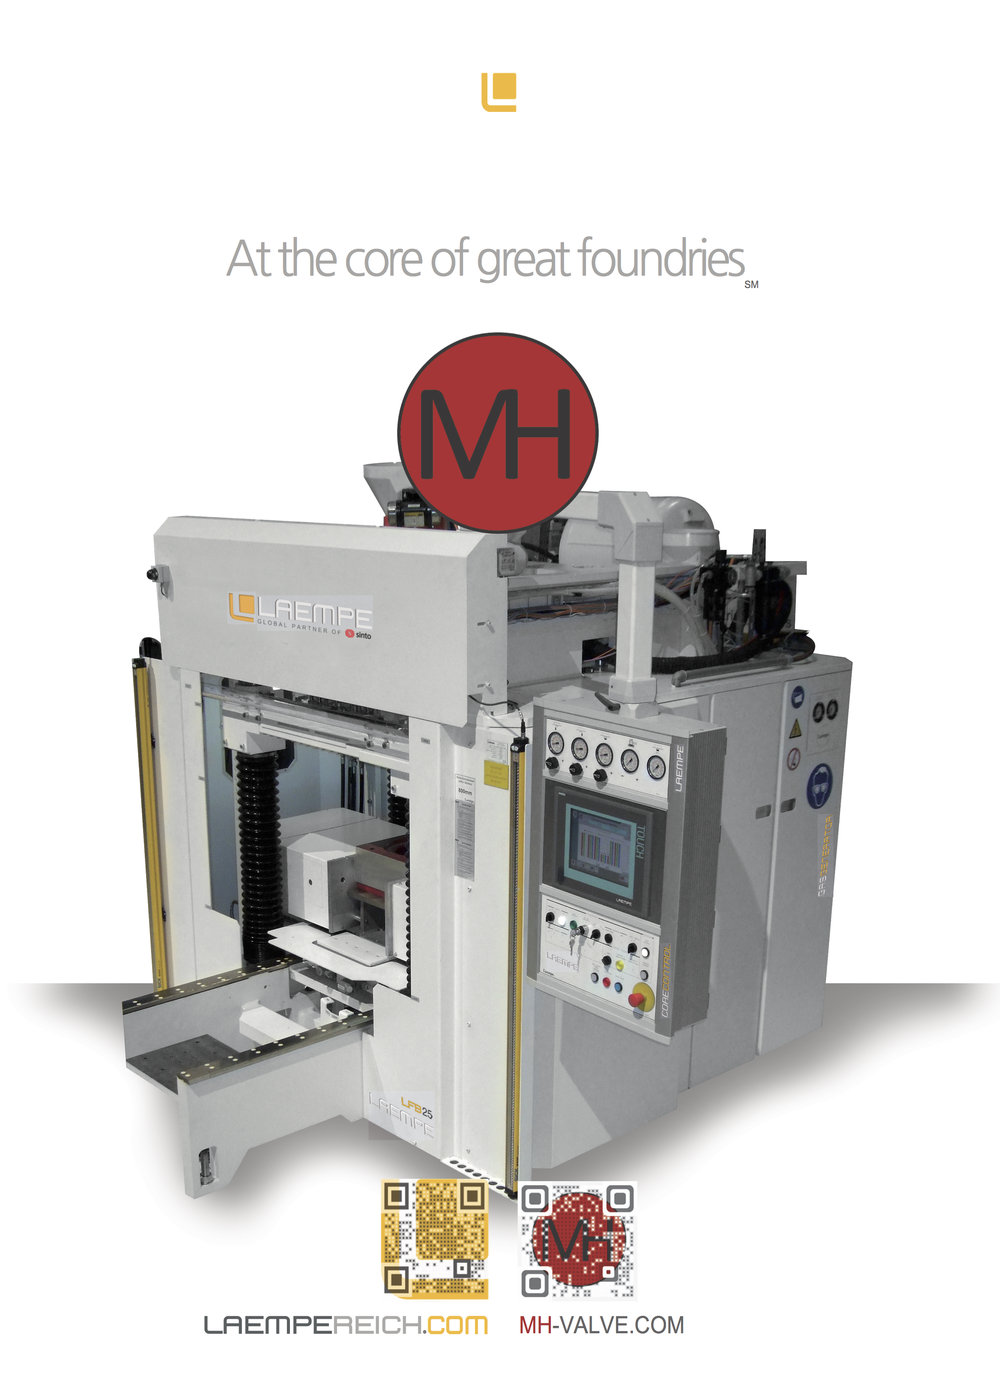 M&H Valve - At the core of great foundries v2.1.jpg